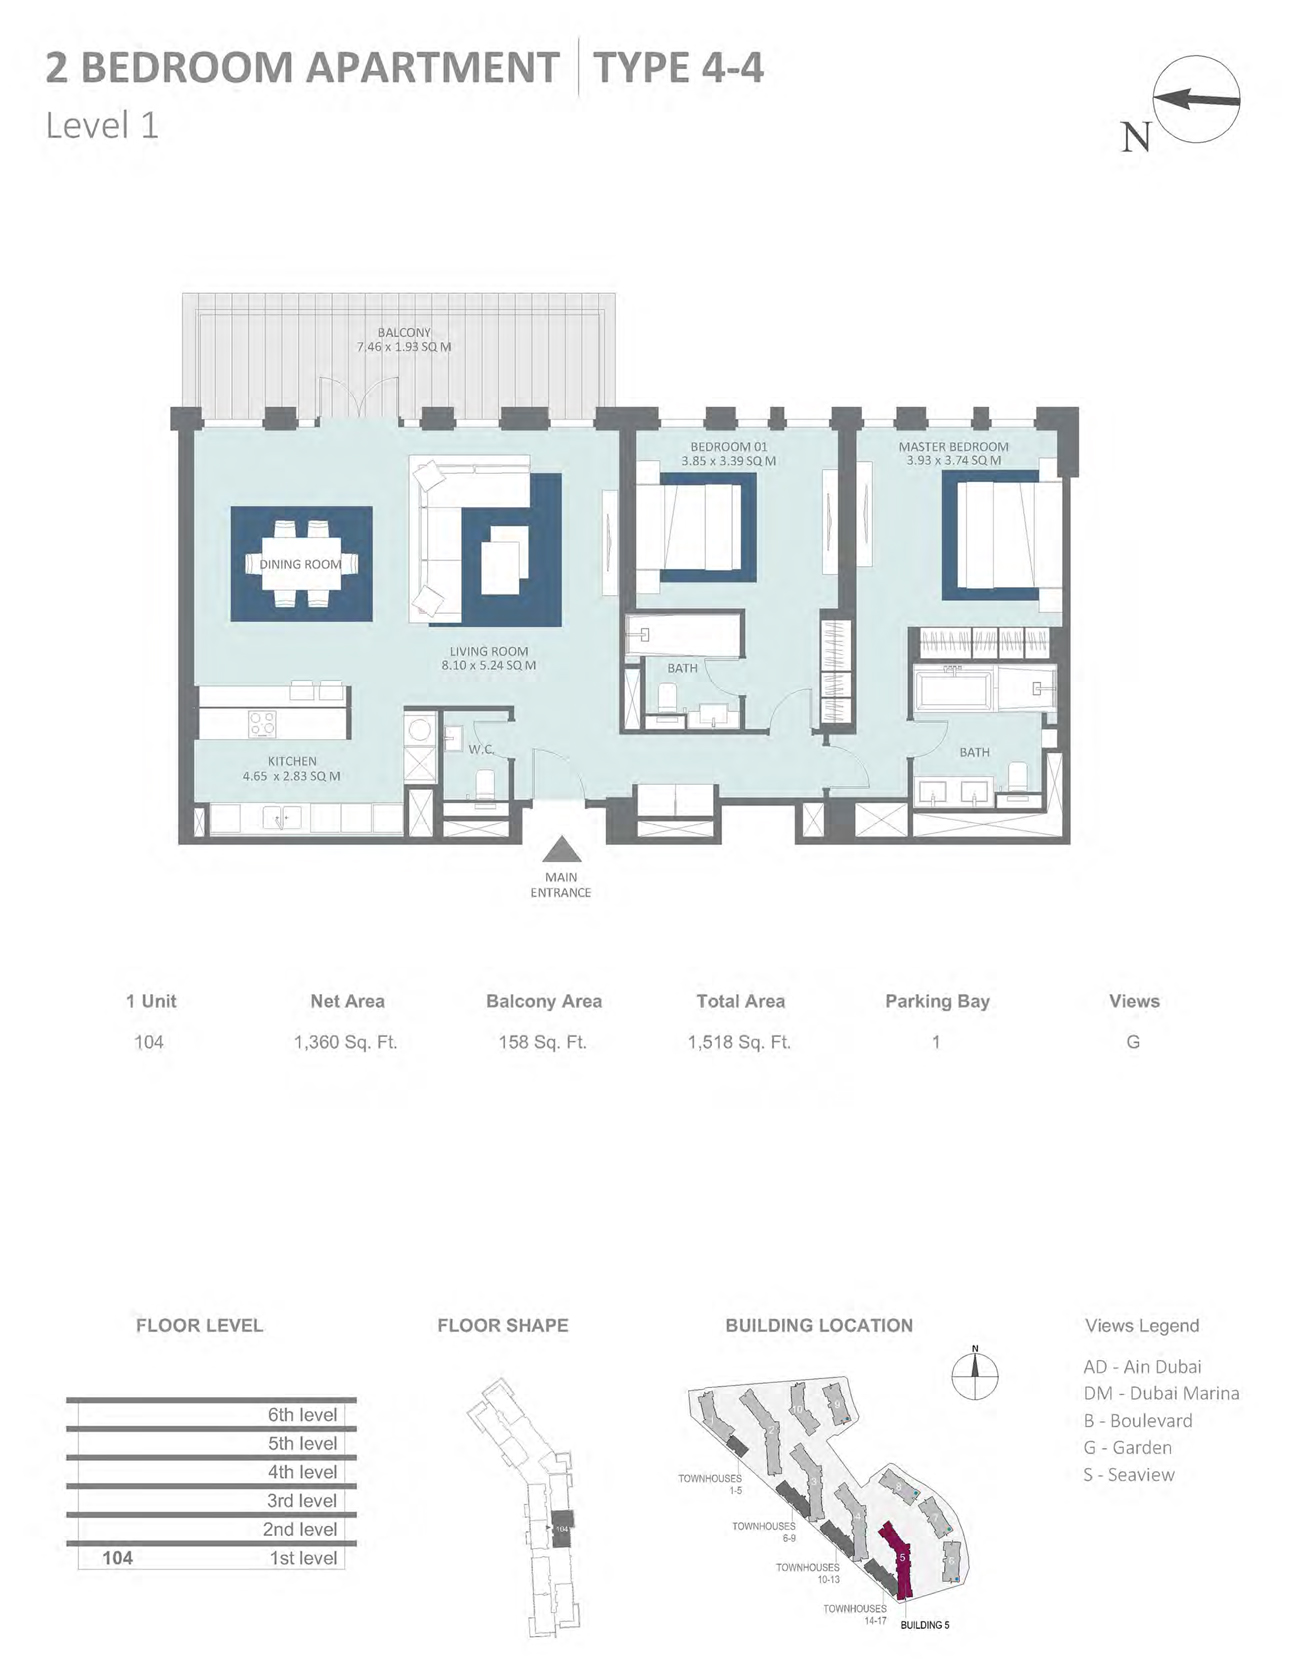 Building 5 - 2 Bedroom Type 4-4 Level 1 , Size 1360    sq. ft.